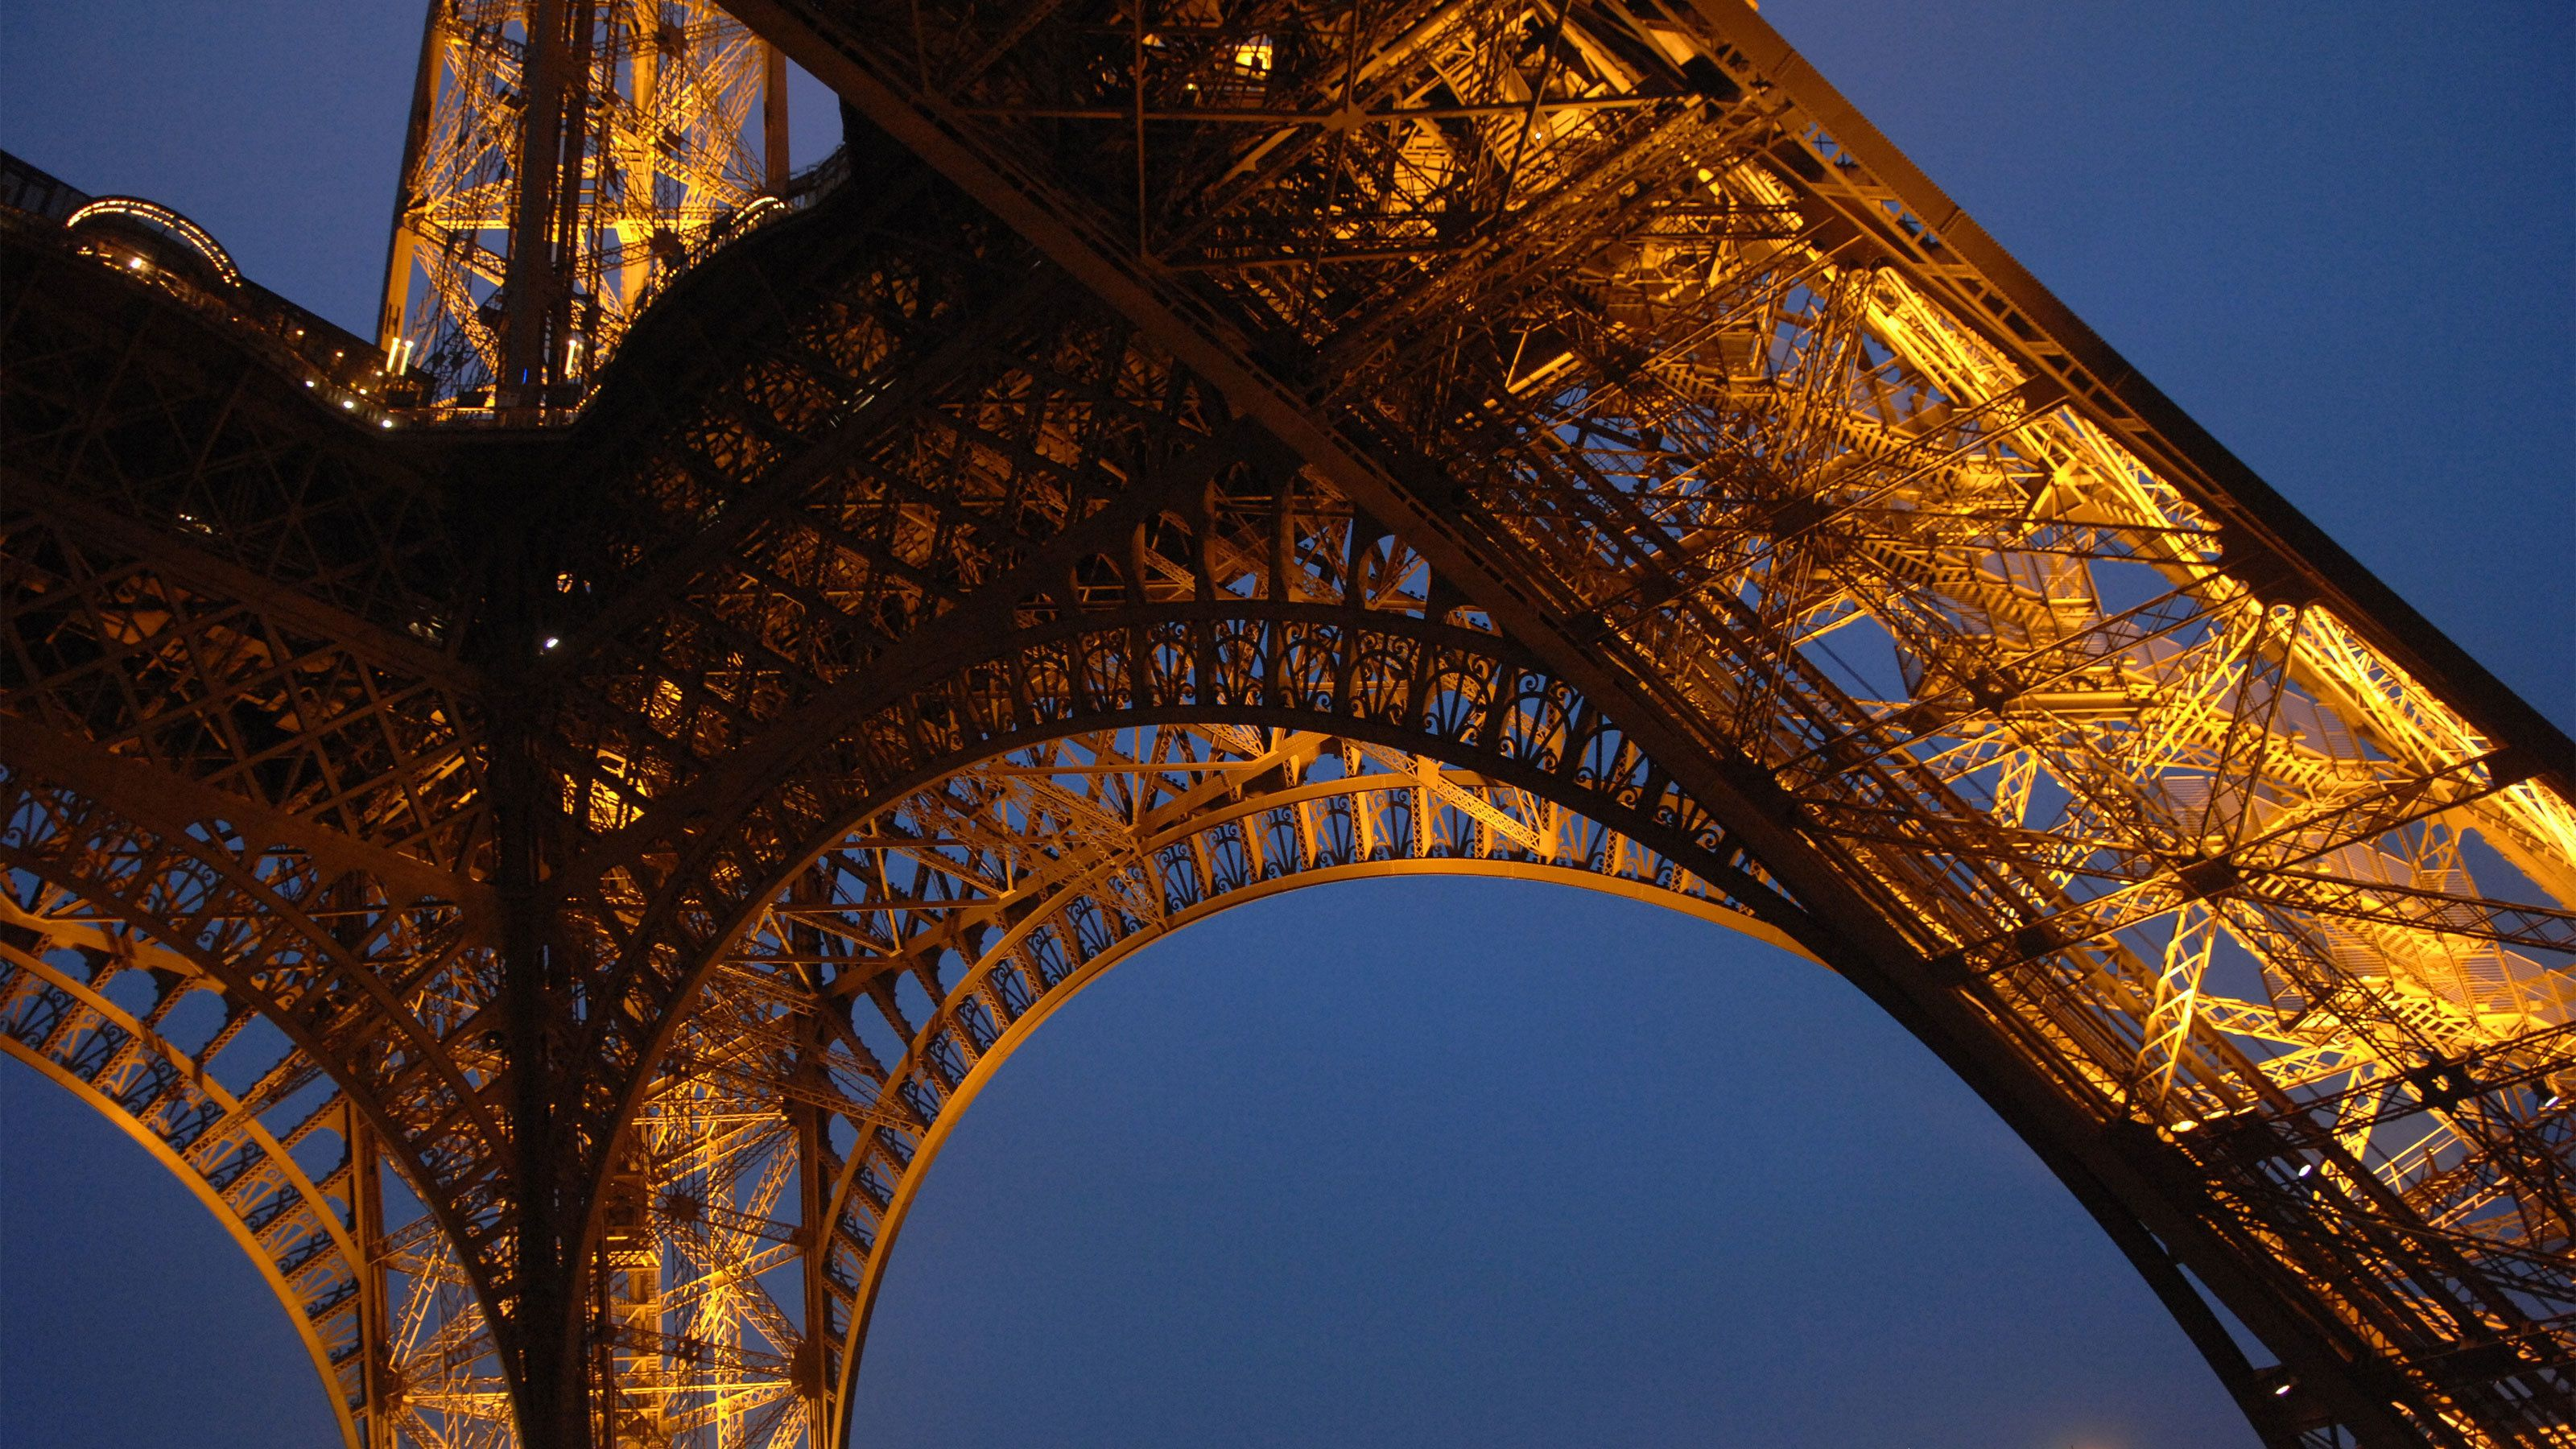 Detail of the Eiffel Tower at night.